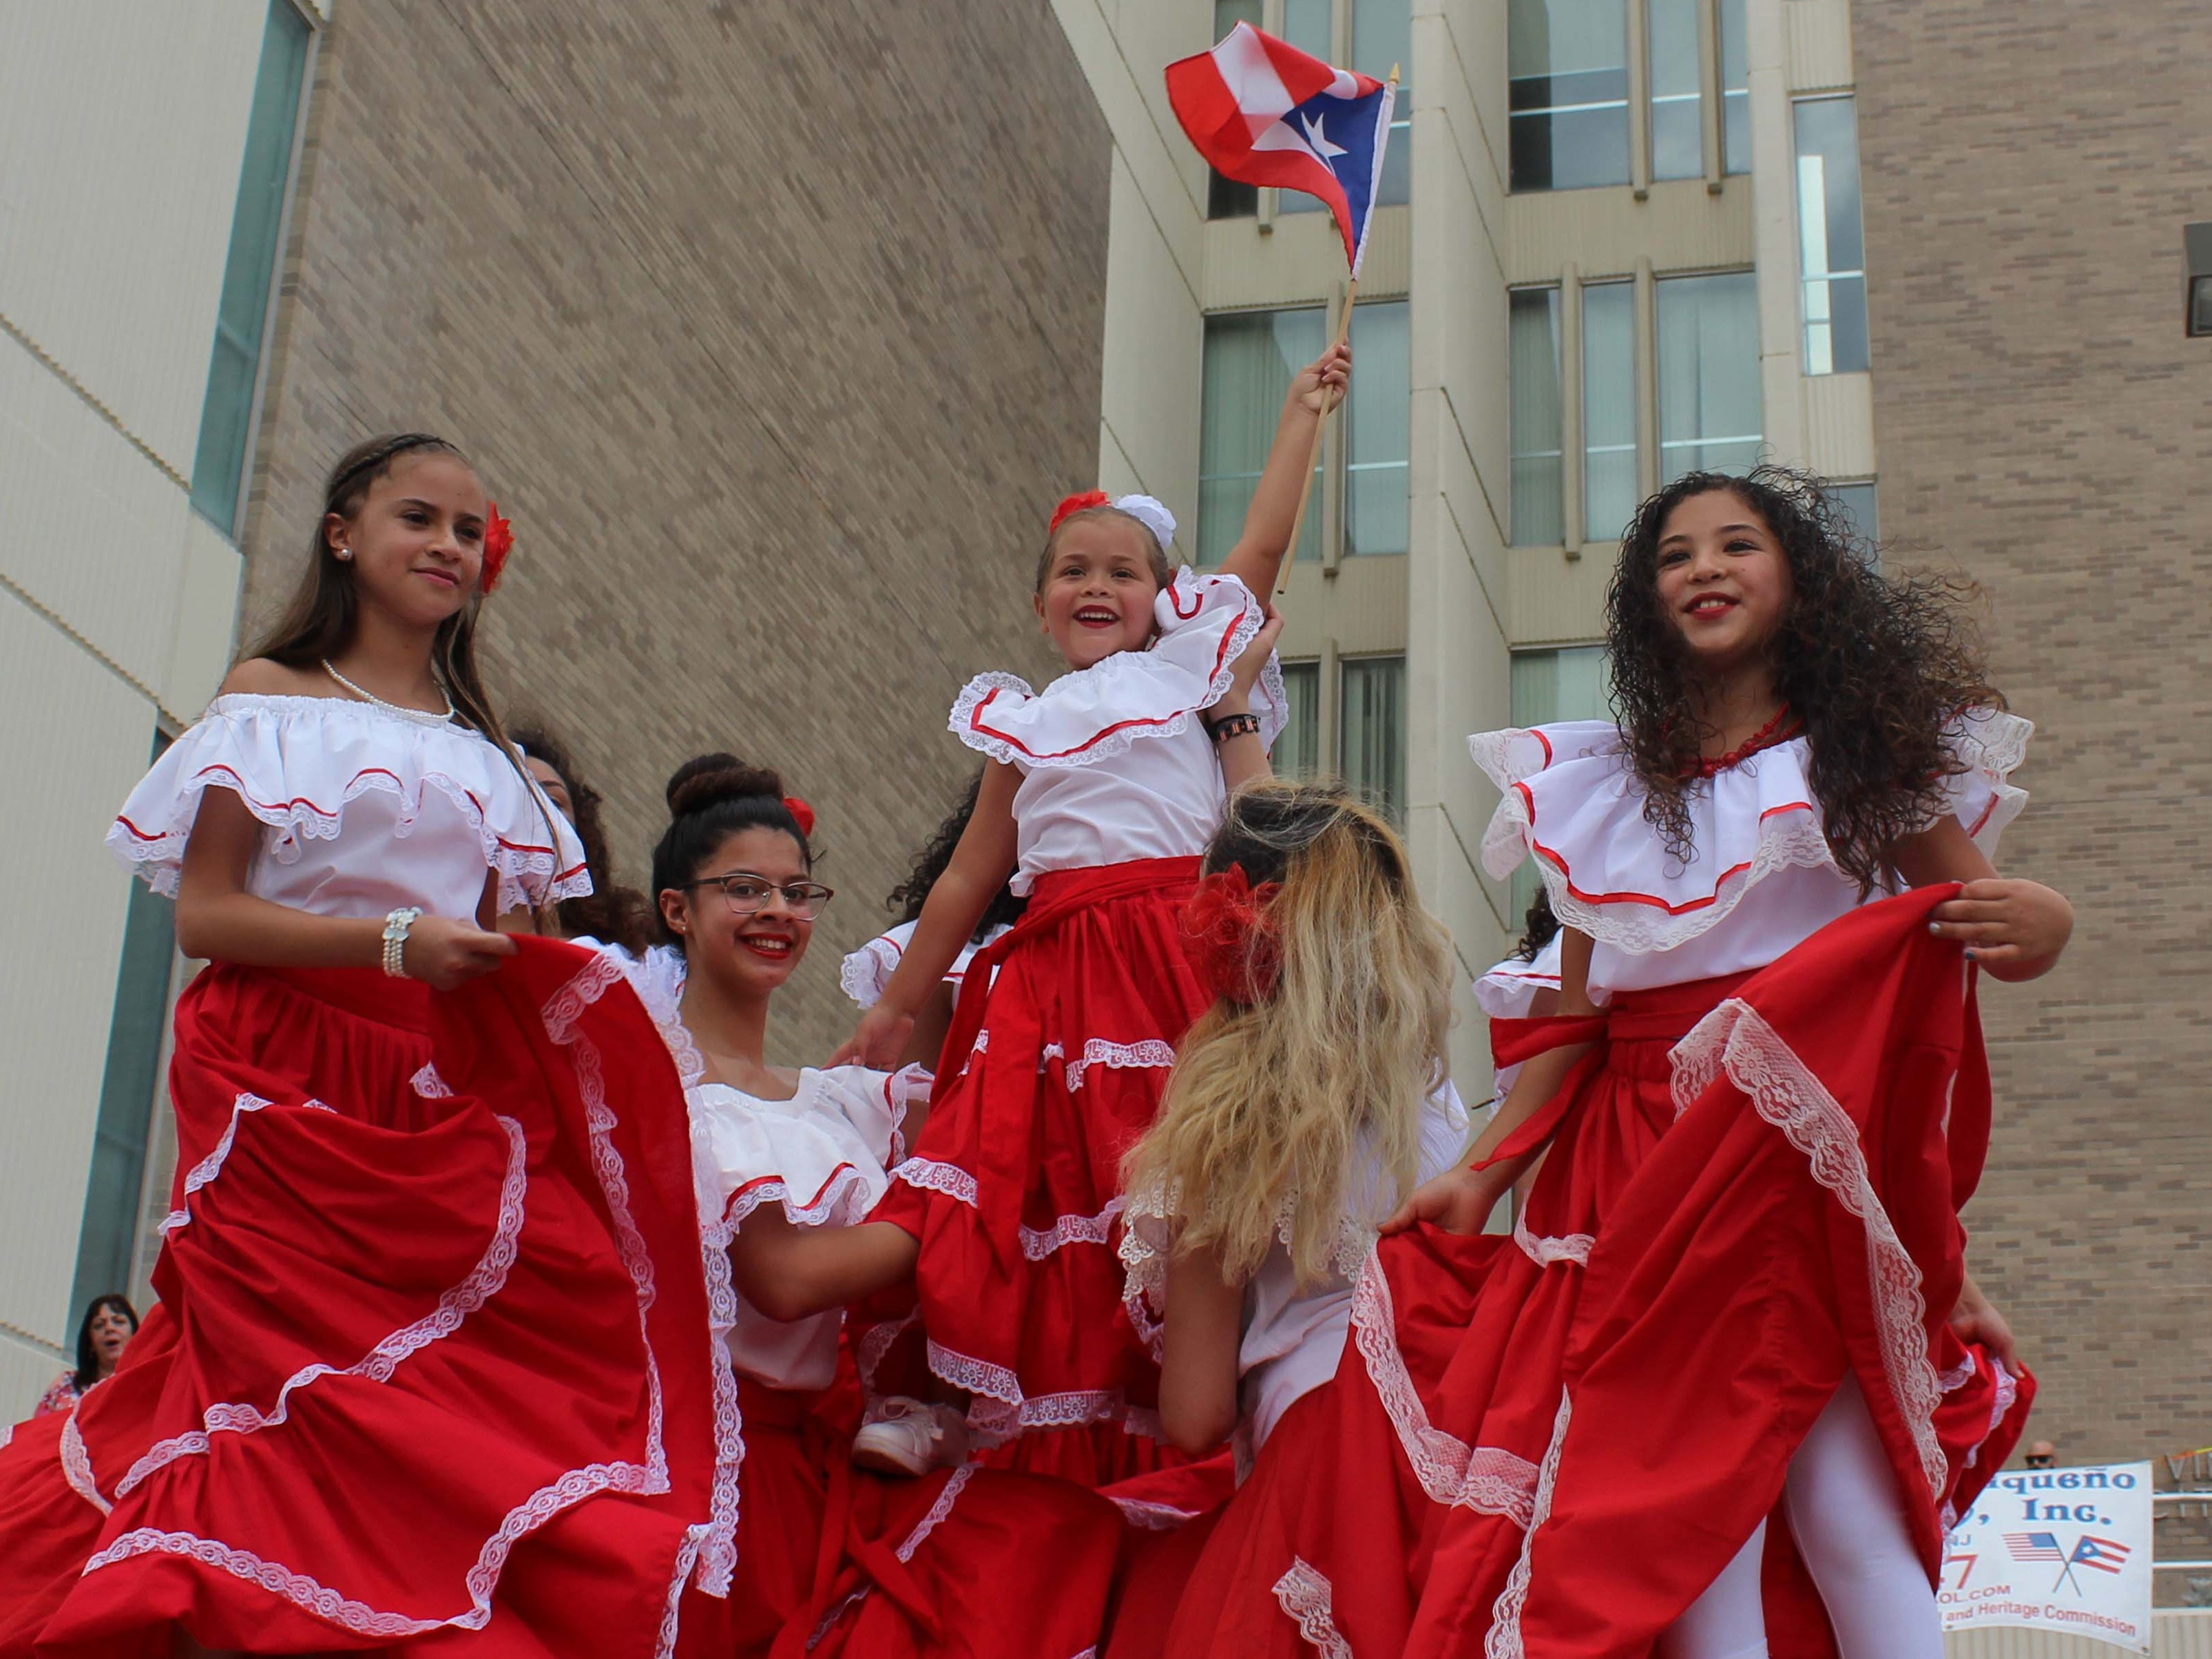 A young dancer proudly raises the Puerto Rican flag to thunderous applause after a dance performance at Vineland City Hall as the Puerto Rican Festival of New Jersey kicked off its 51st annual celebration on Sunday, July 22, 2018.